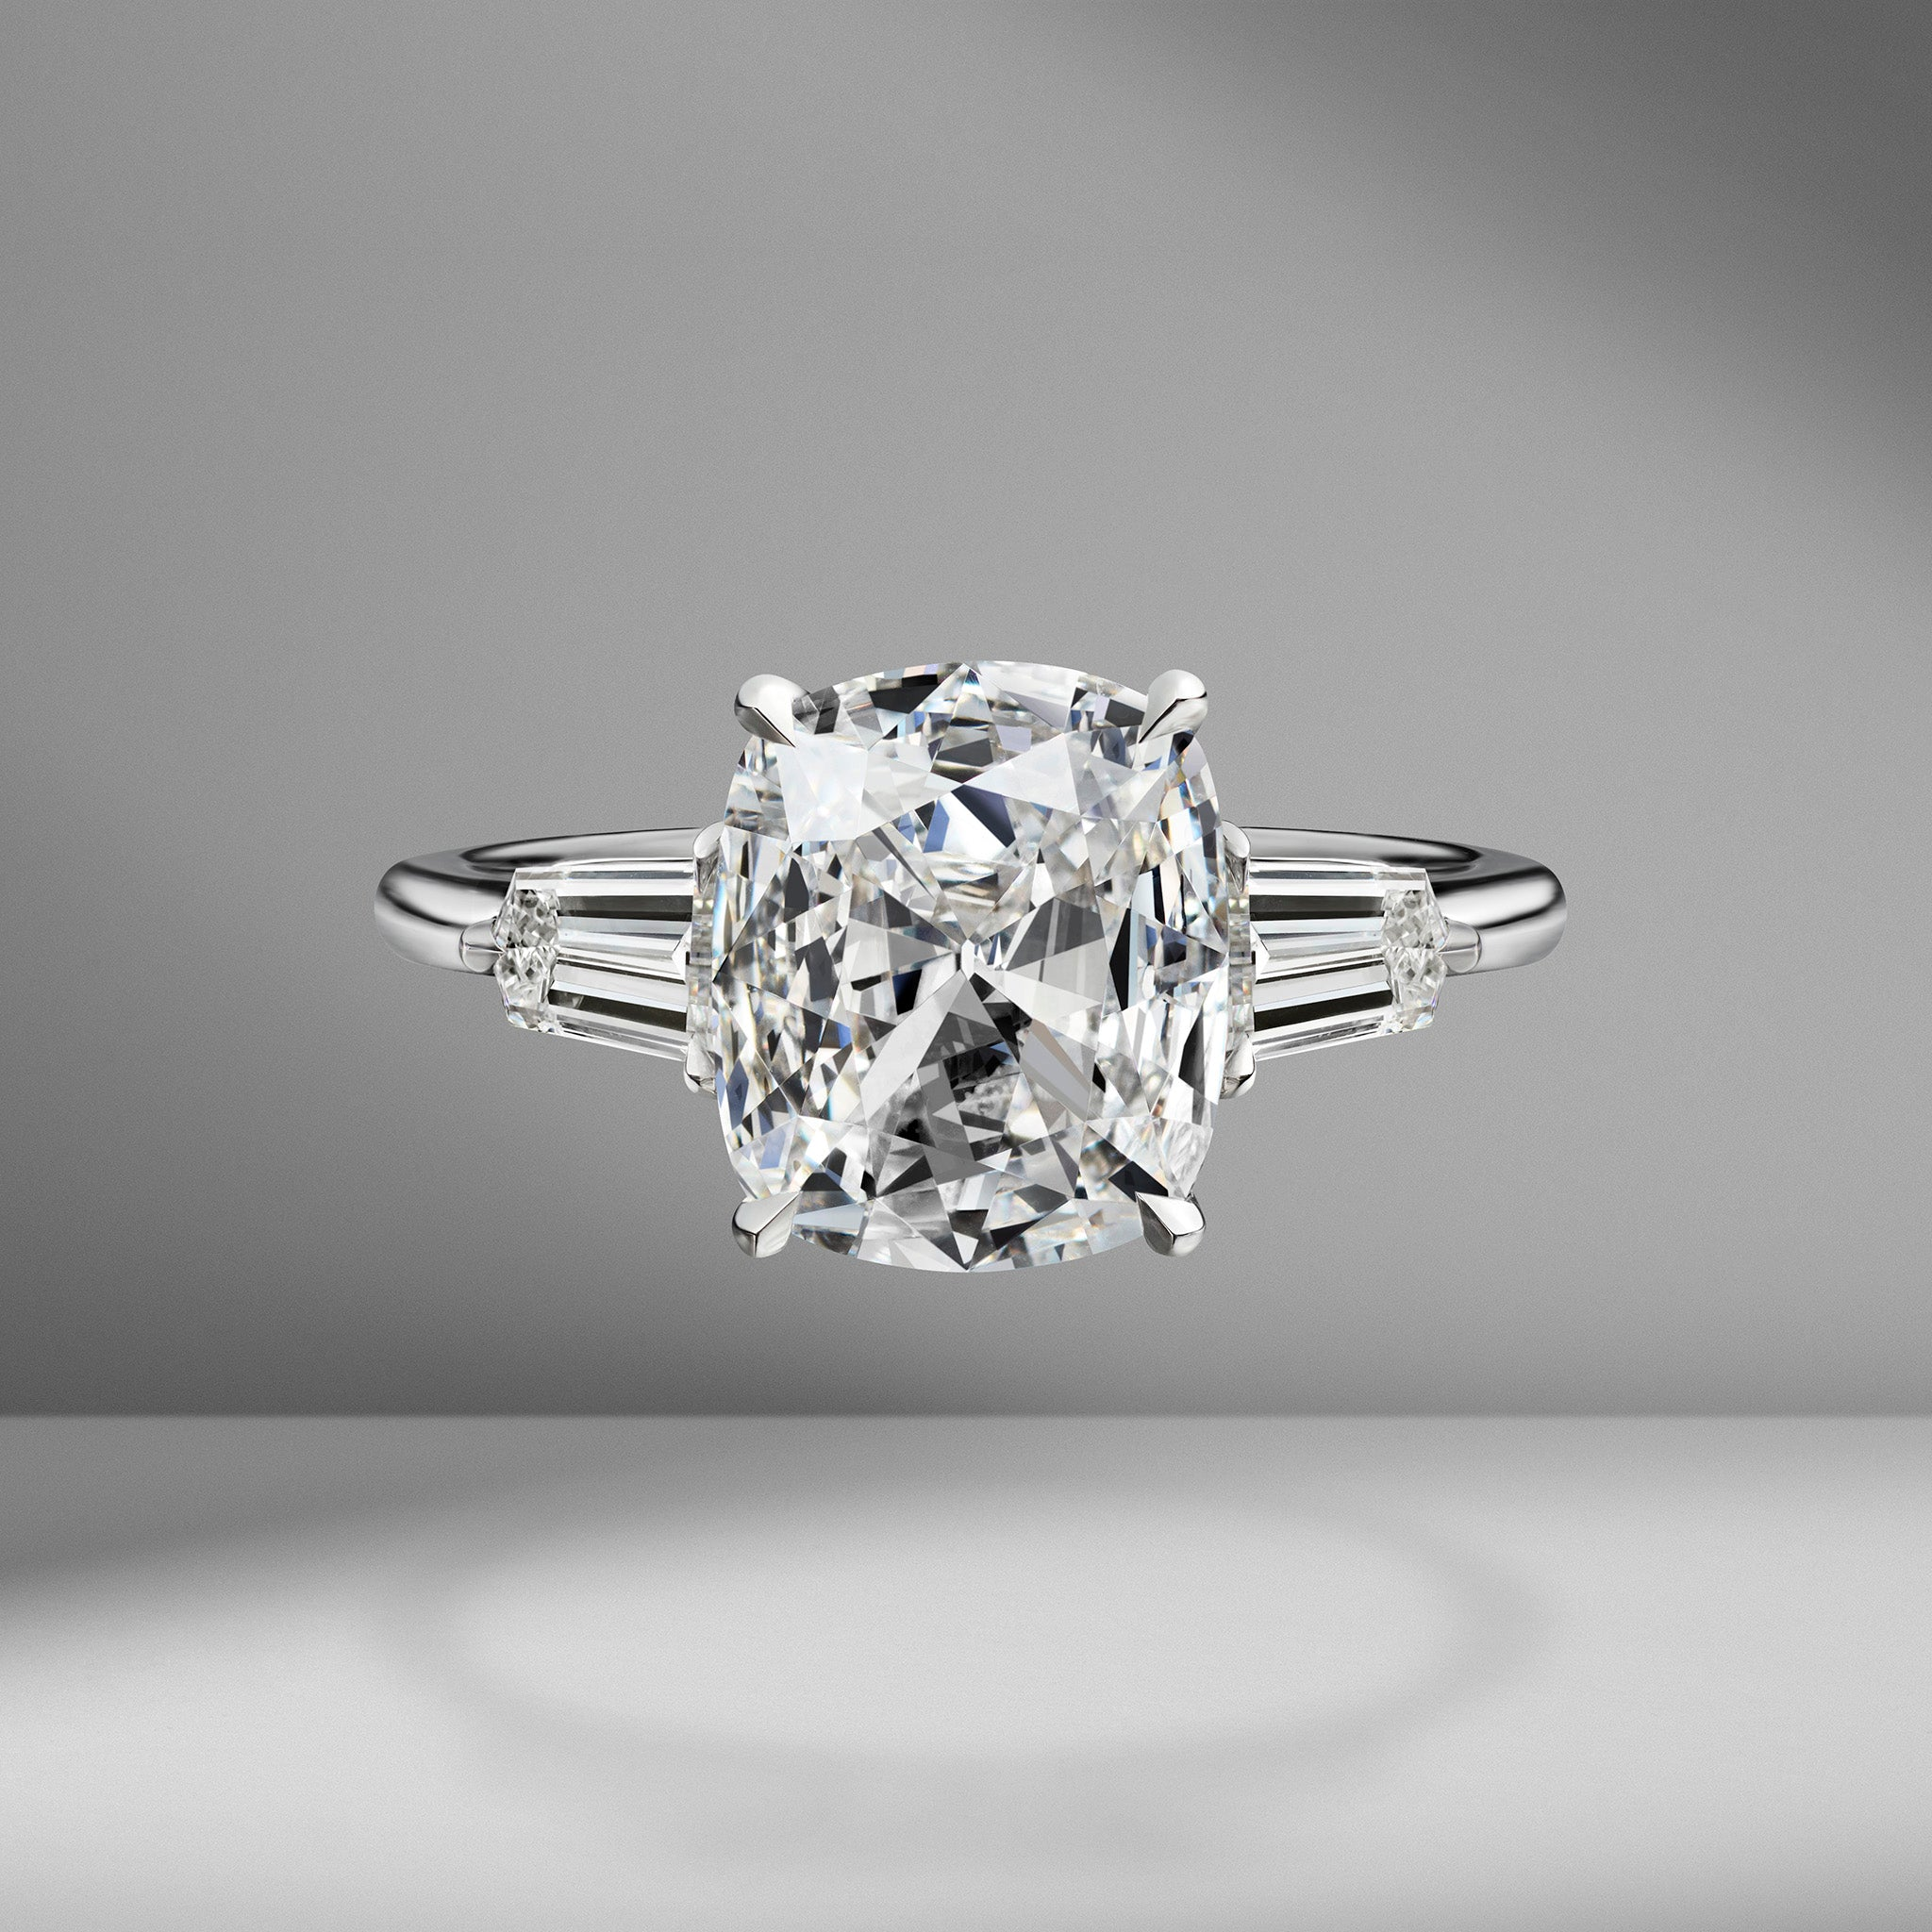 Antique Cushion Cut Engagement Ring with Bullets